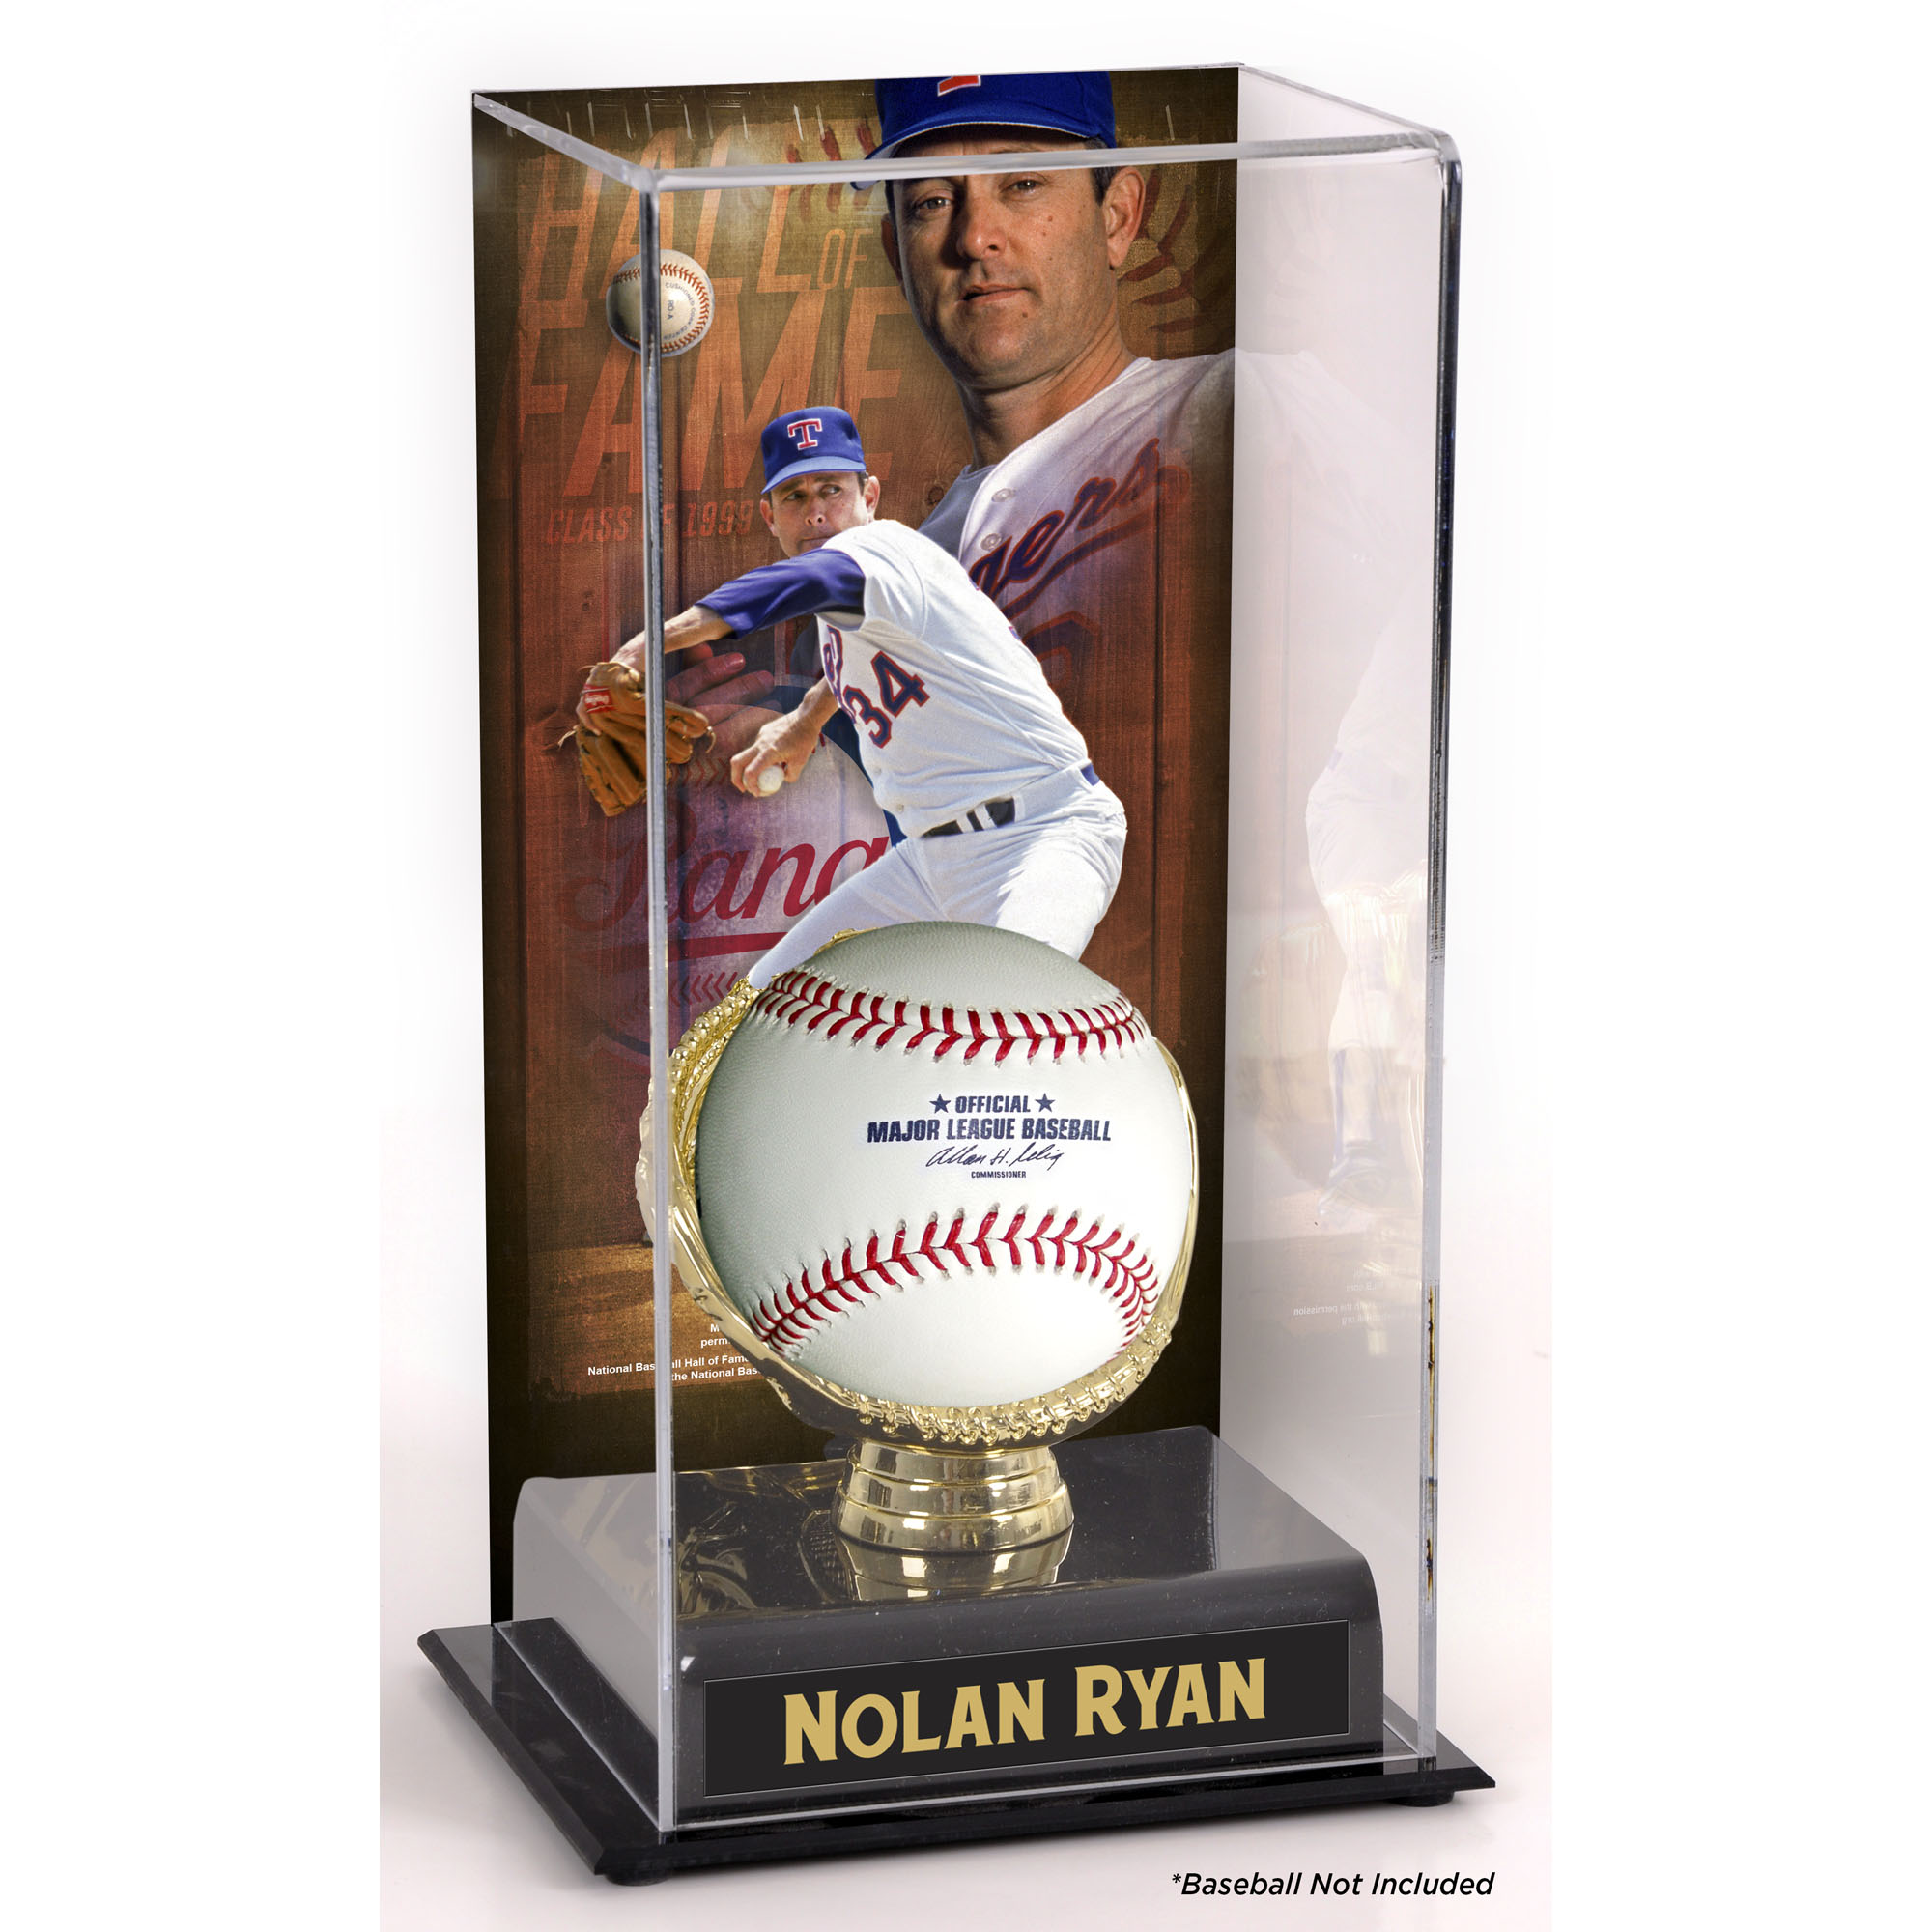 Nolan Ryan Texas Rangers Fanatics Authentic Hall of Fame Sublimated Display Case with Image - No Size